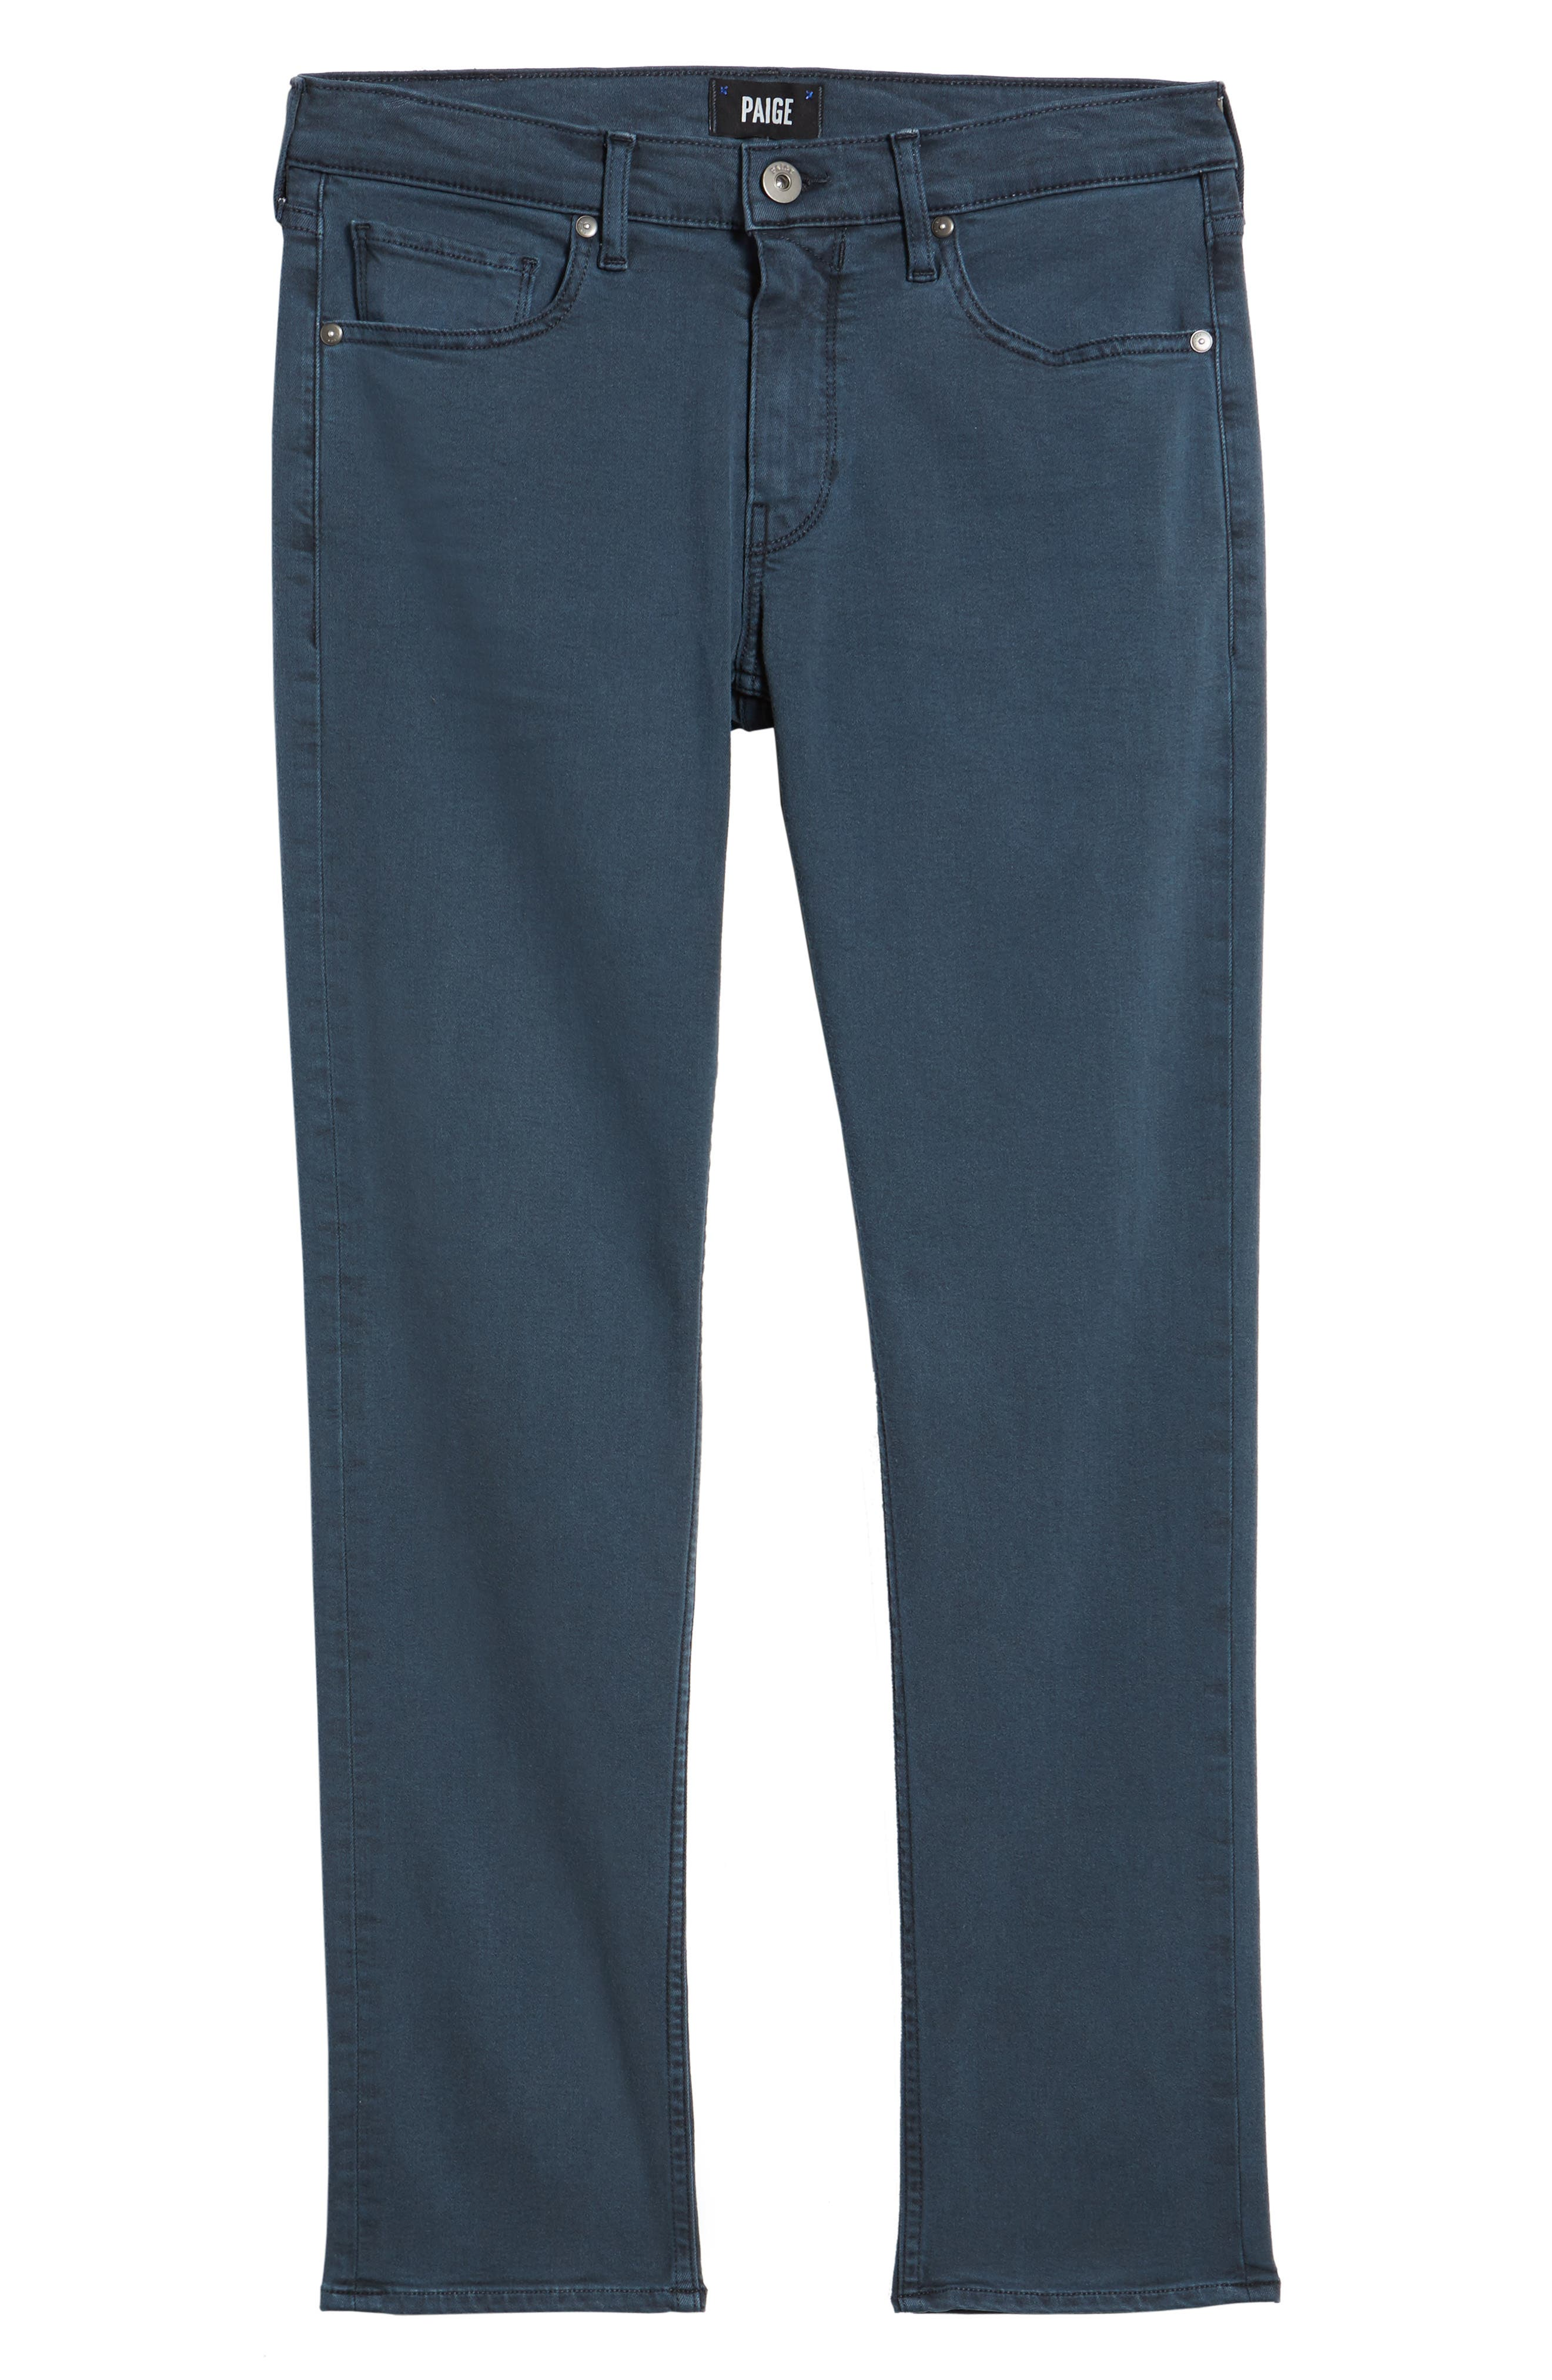 Lennox Slim Fit Jeans,                             Alternate thumbnail 6, color,                             VINTAGE AMALFI